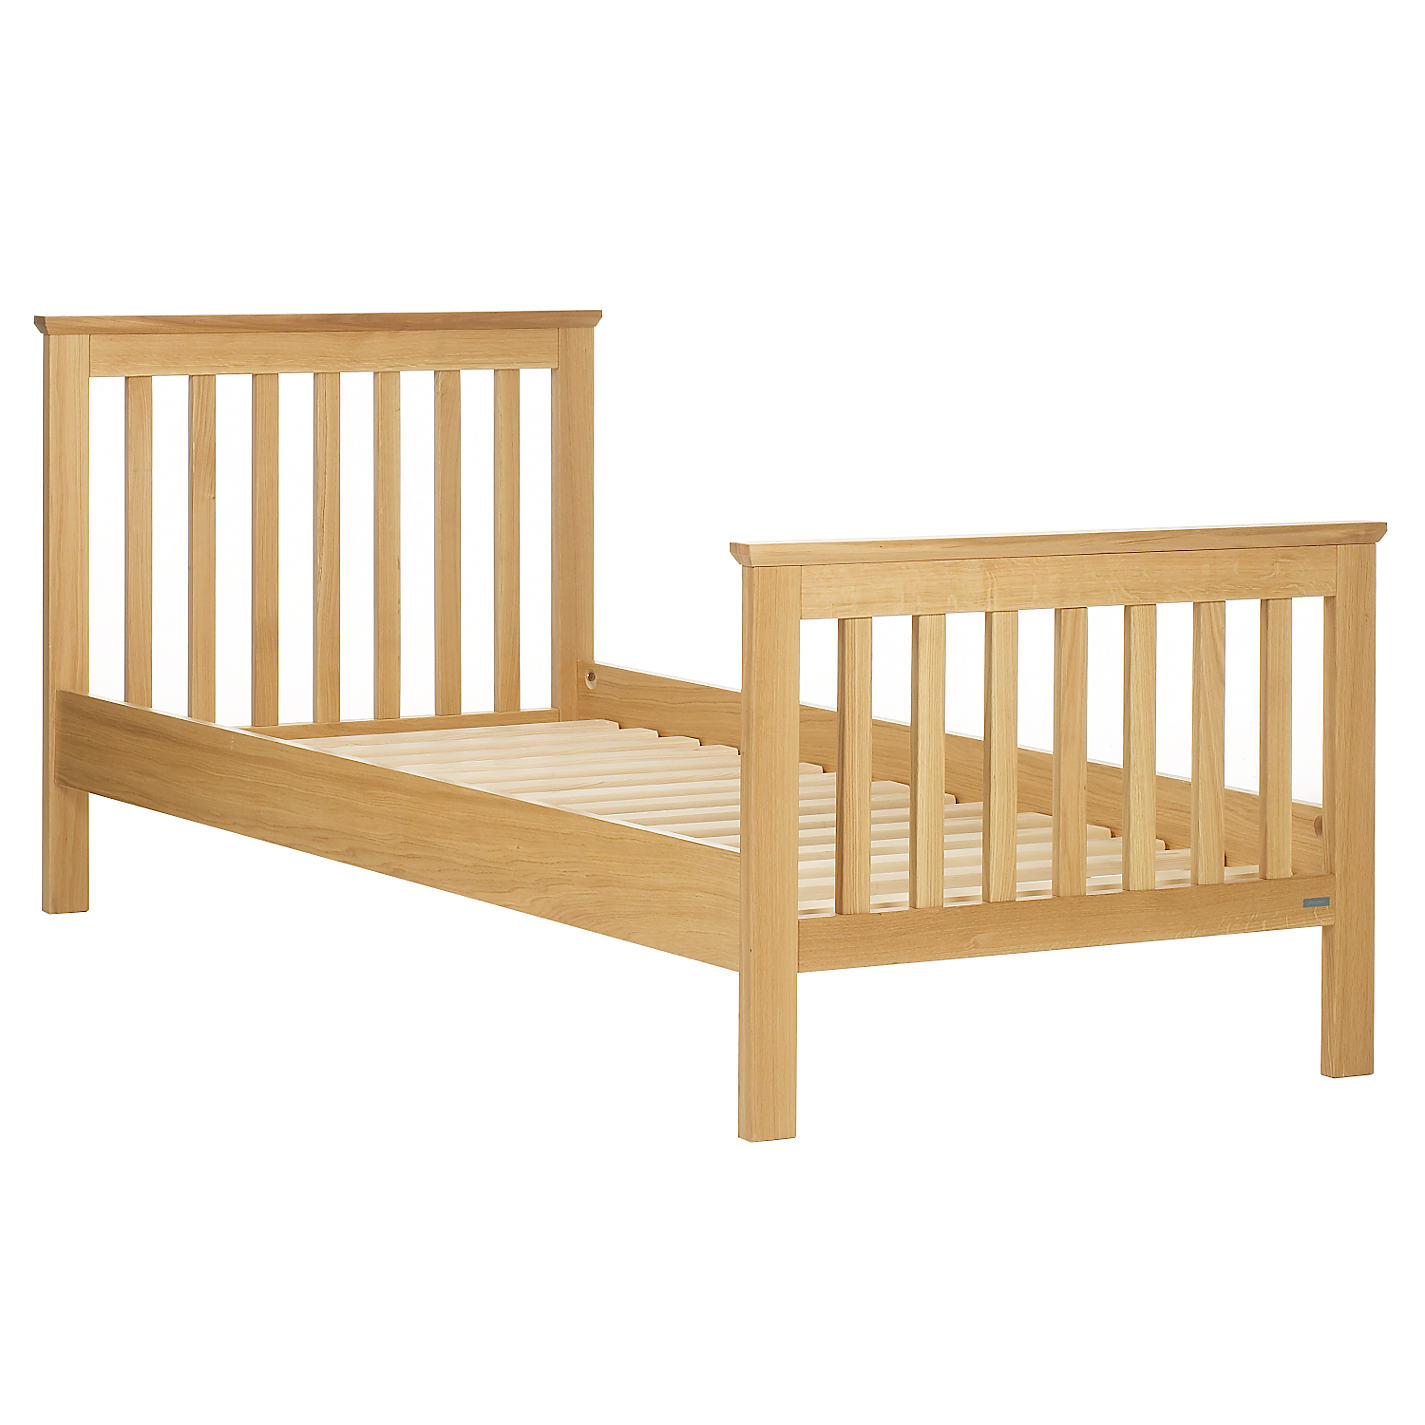 Buy John Lewis Lasko Single Bed Frame Oak Online At Johnlewis